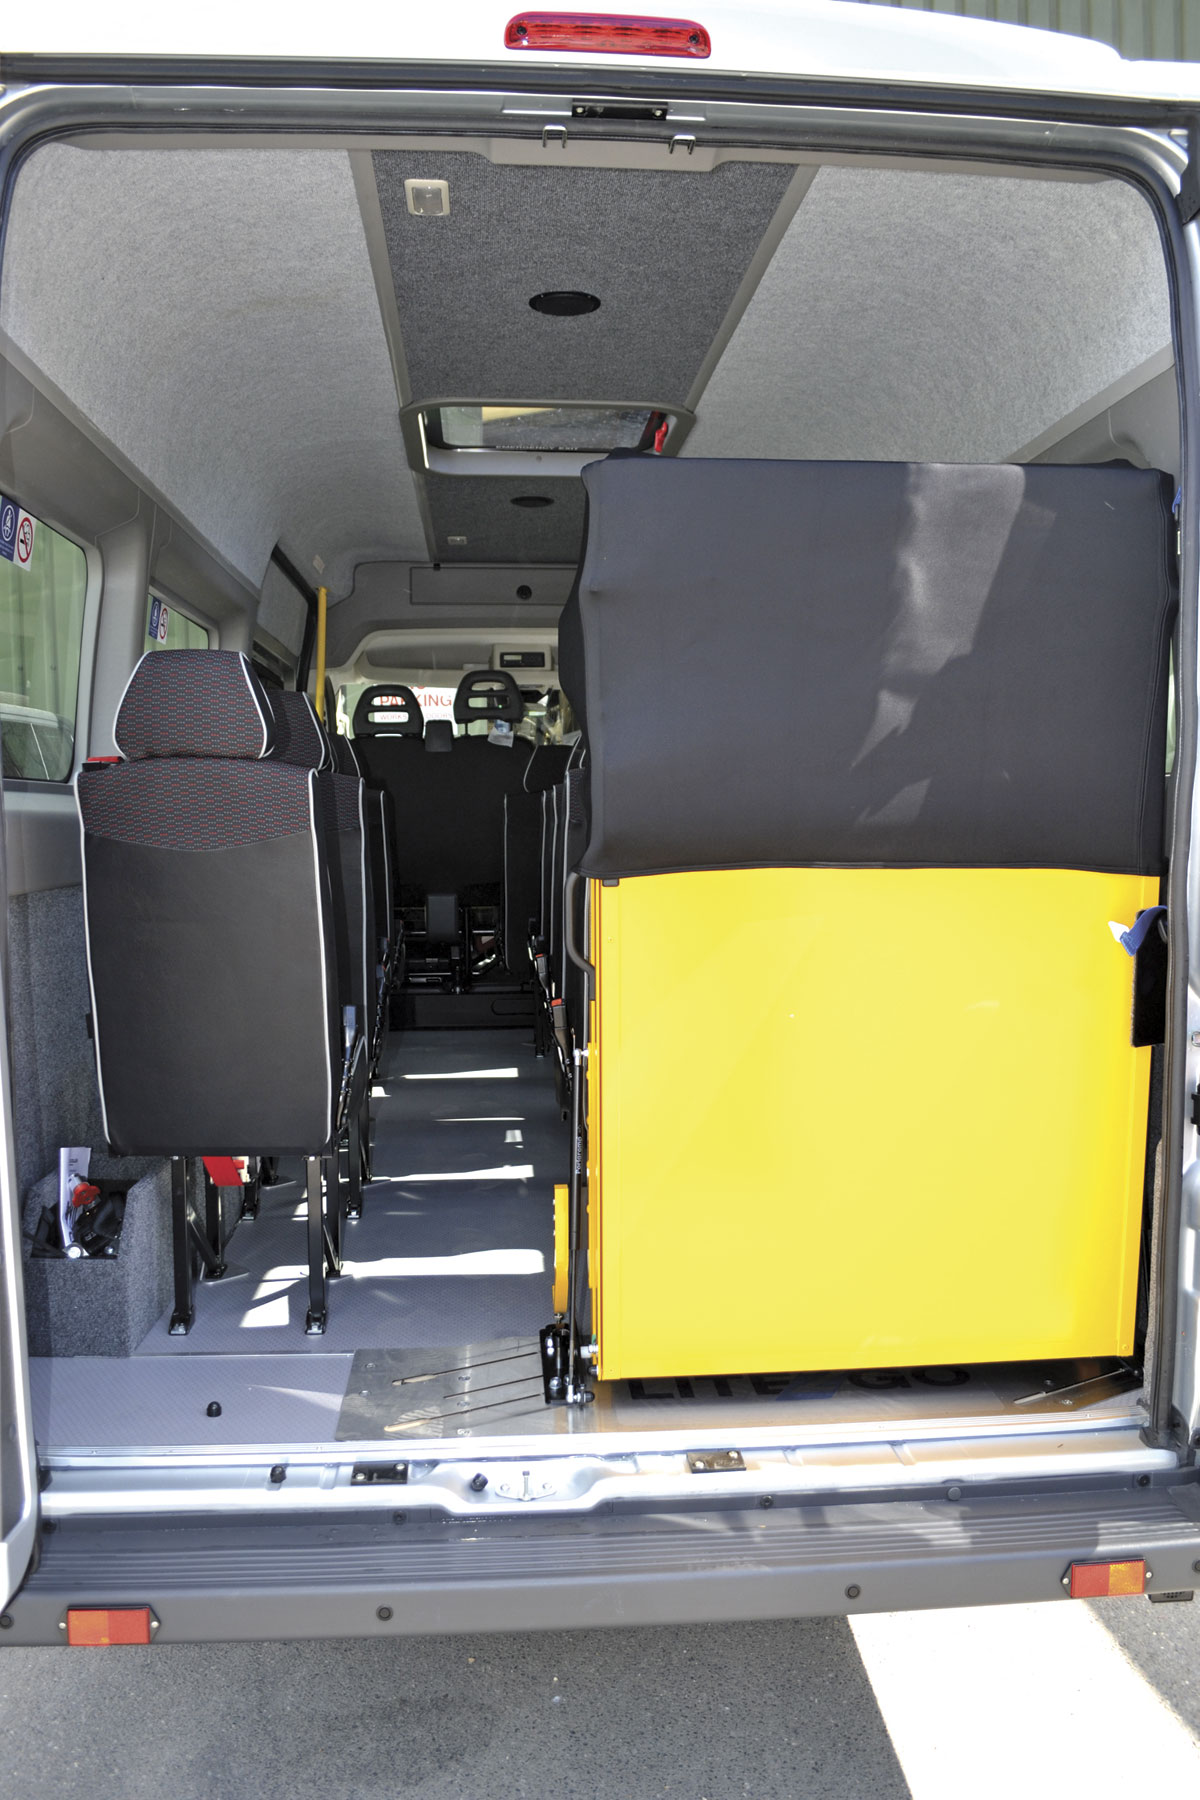 And folded away with its discreet cover. The lower part is hidden by the door panel